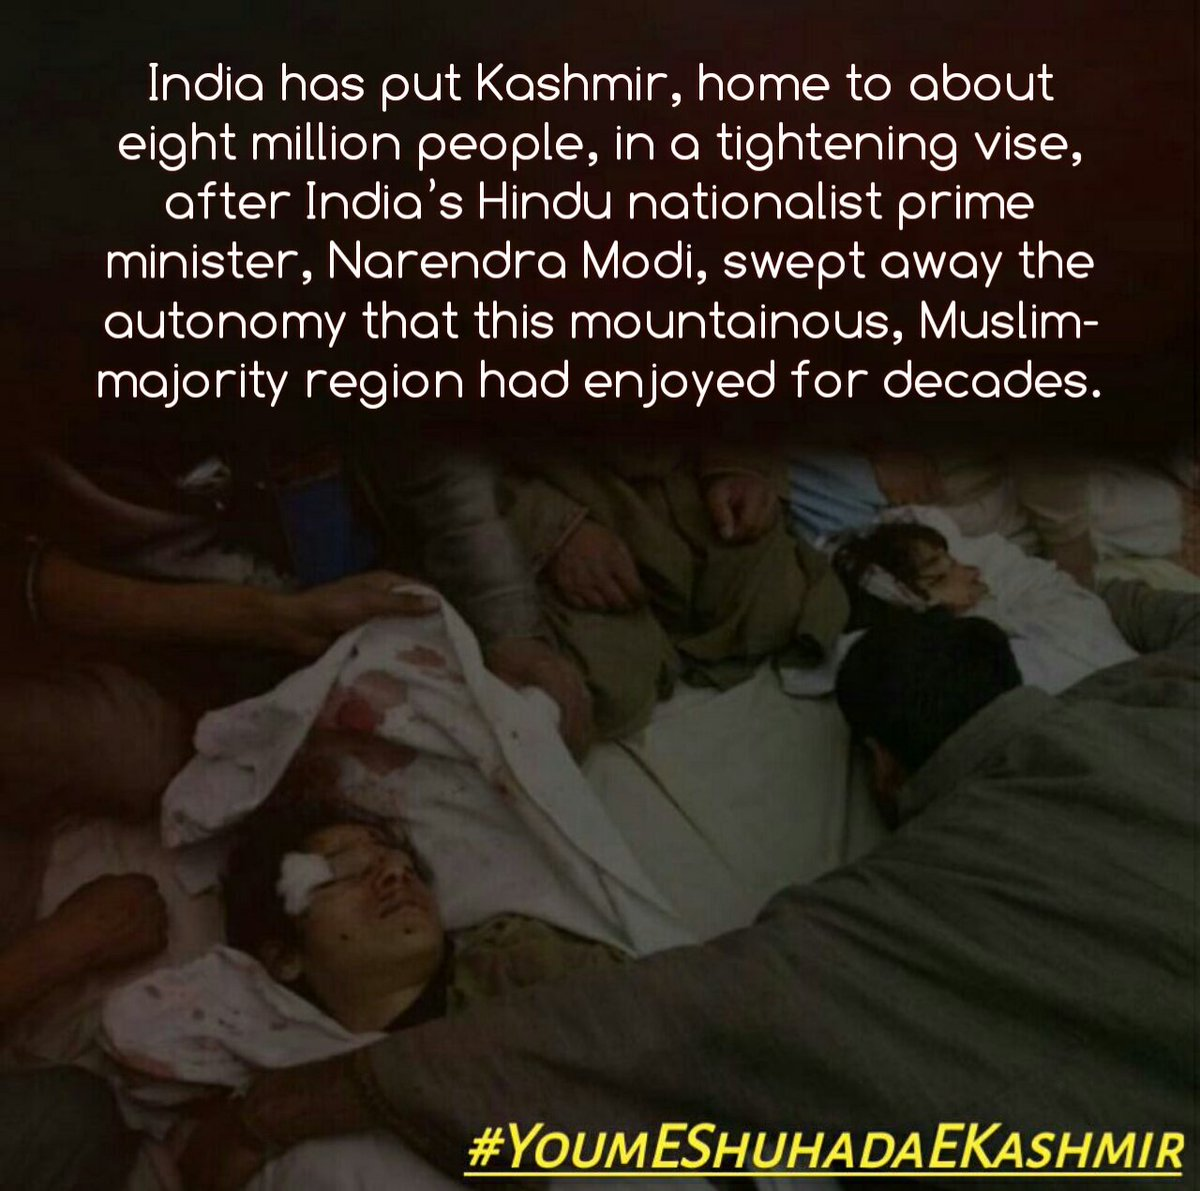 The exemplary perseverance, commitment and bravery has become a beacon of hope and faith for all Kashmiris. #YoumEShuhadaEKashmir<br>http://pic.twitter.com/iiPhSztV9h